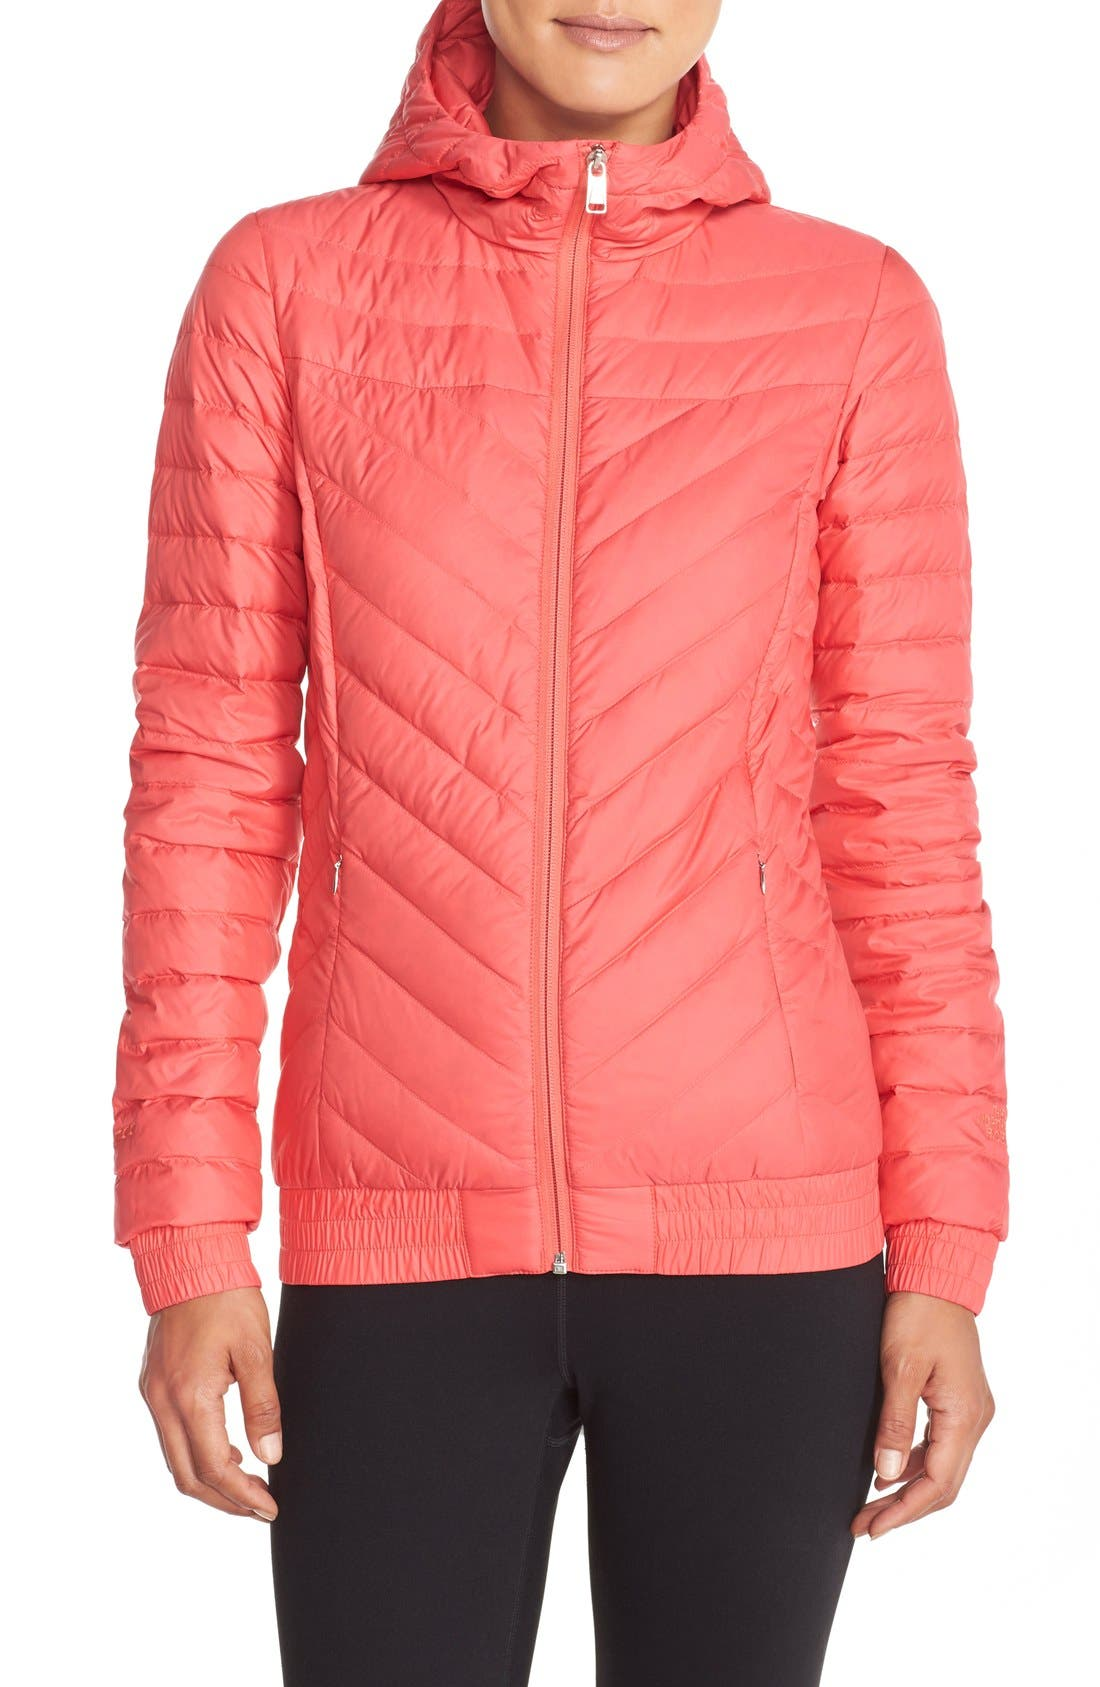 Alternate Image 1 Selected - The North Face 'Karokora' Quilted Down Bomber Jacket